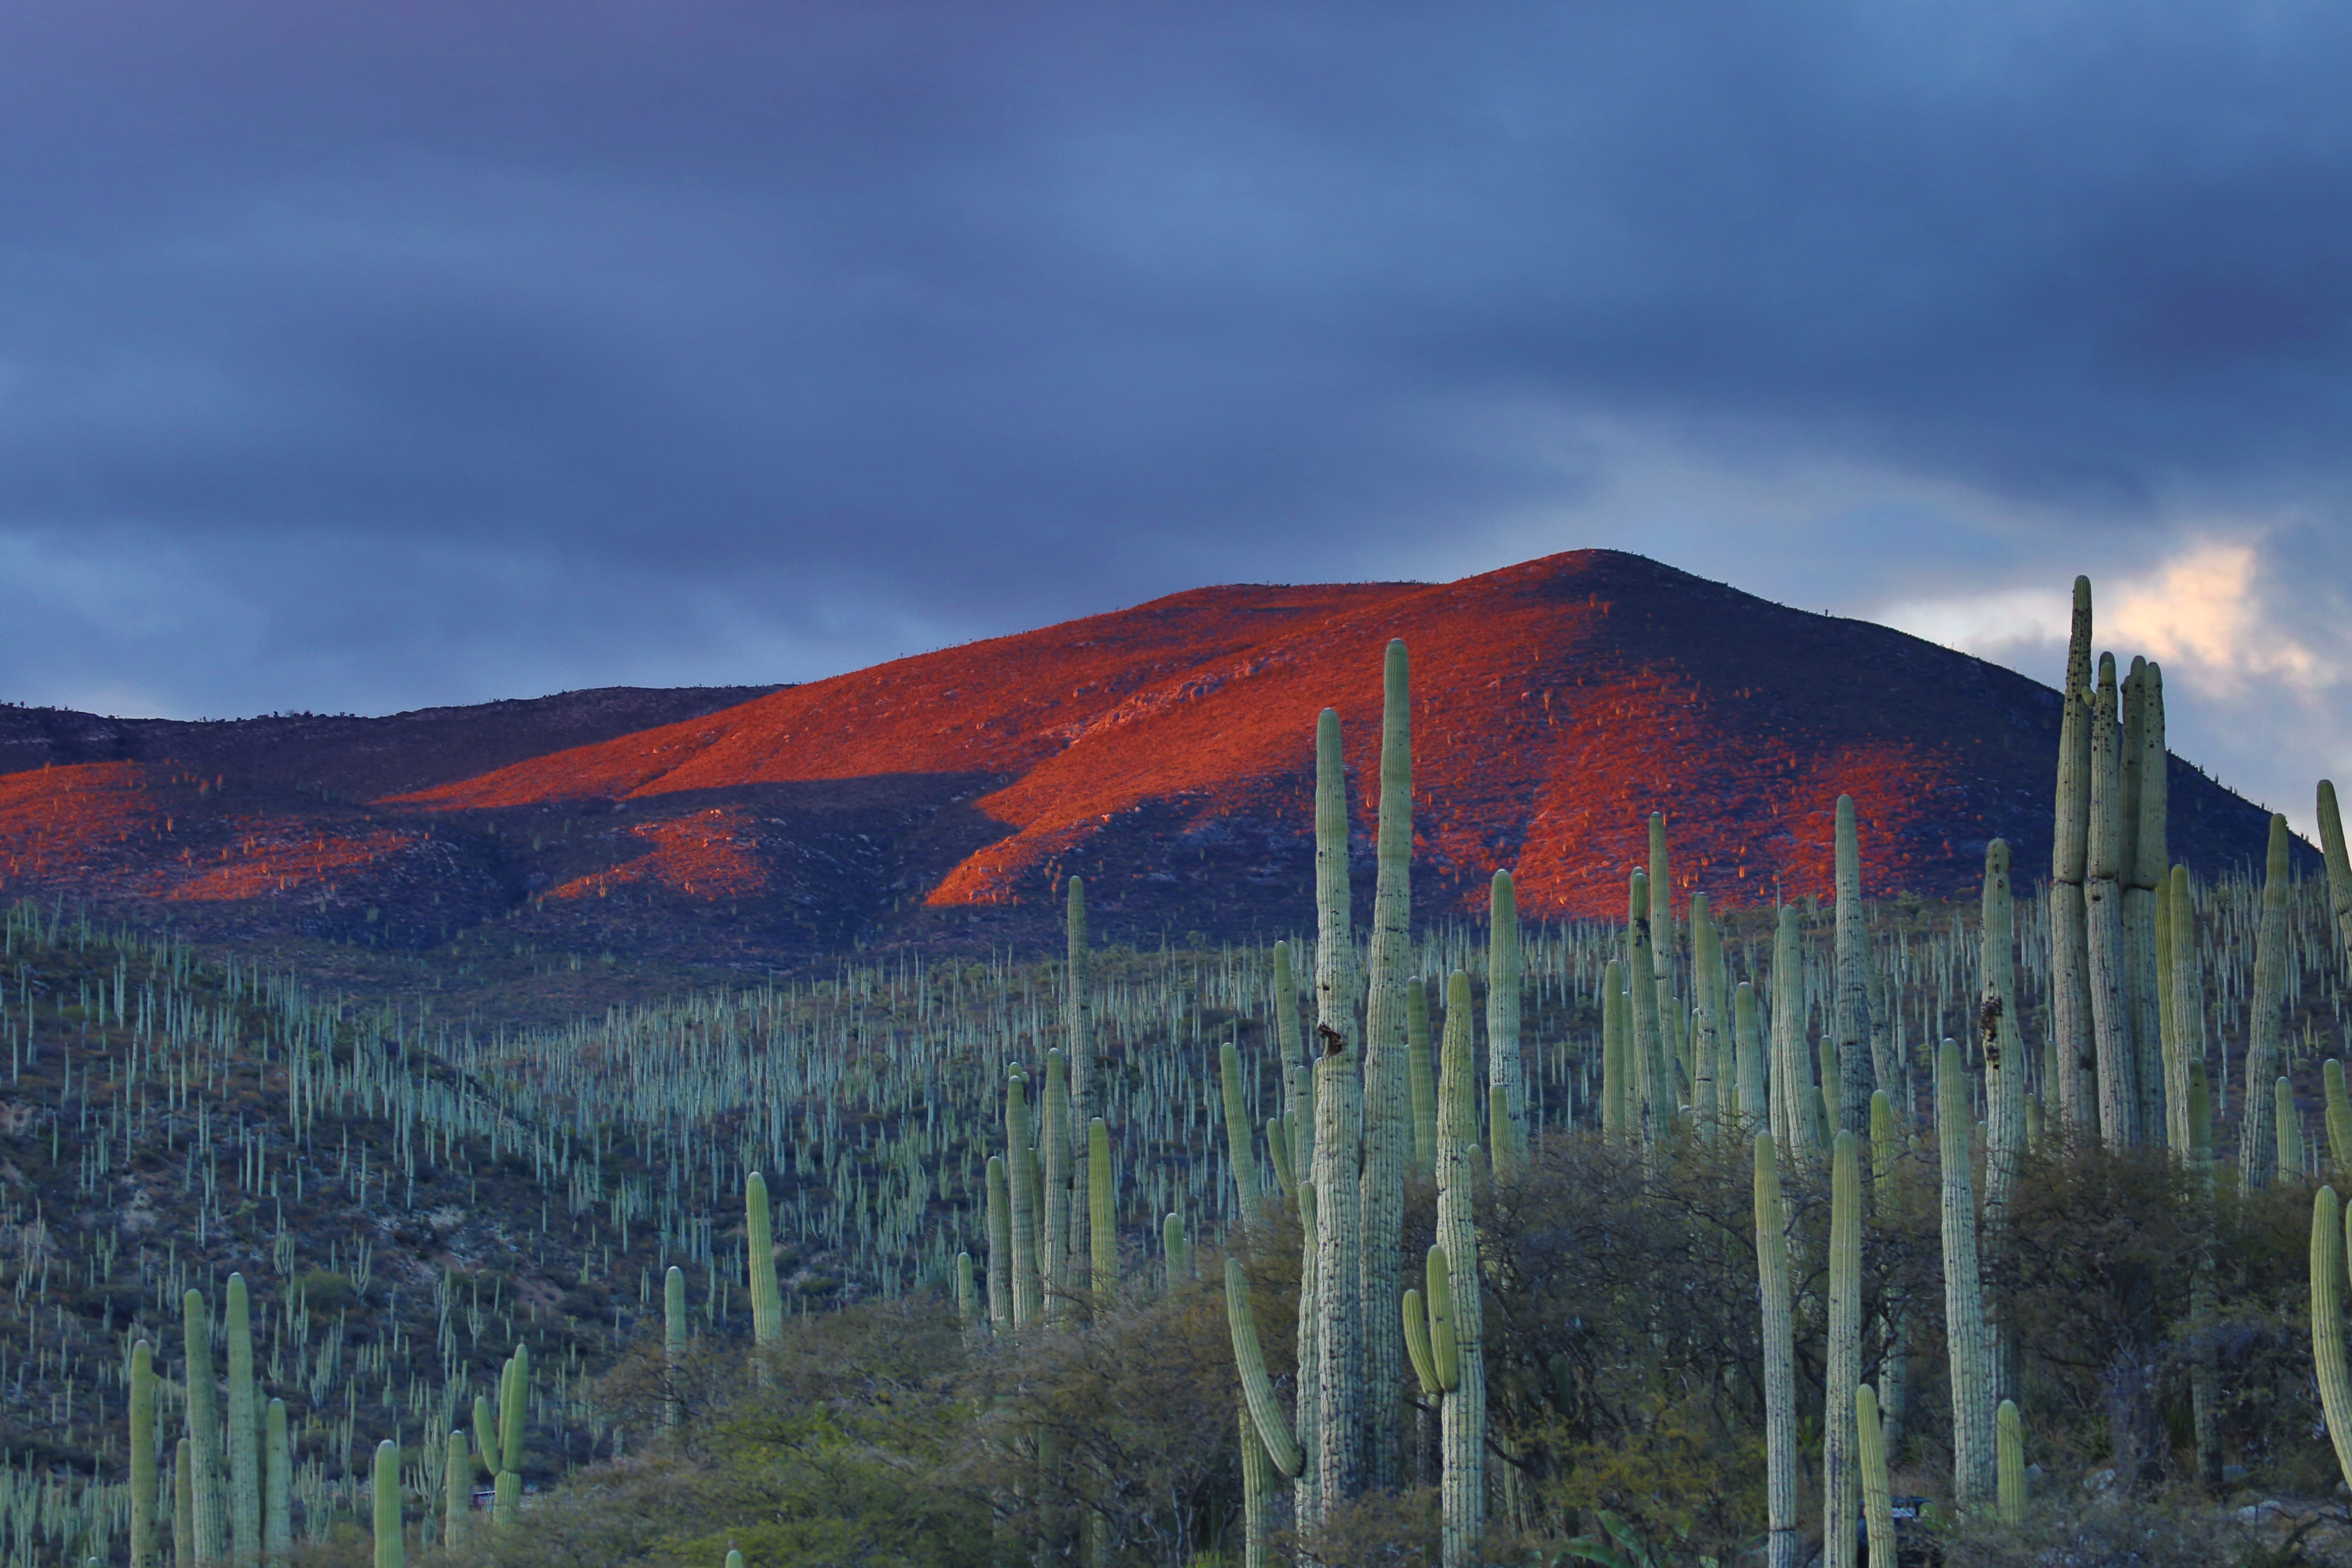 Cacti and red mountains in the desert at dusk